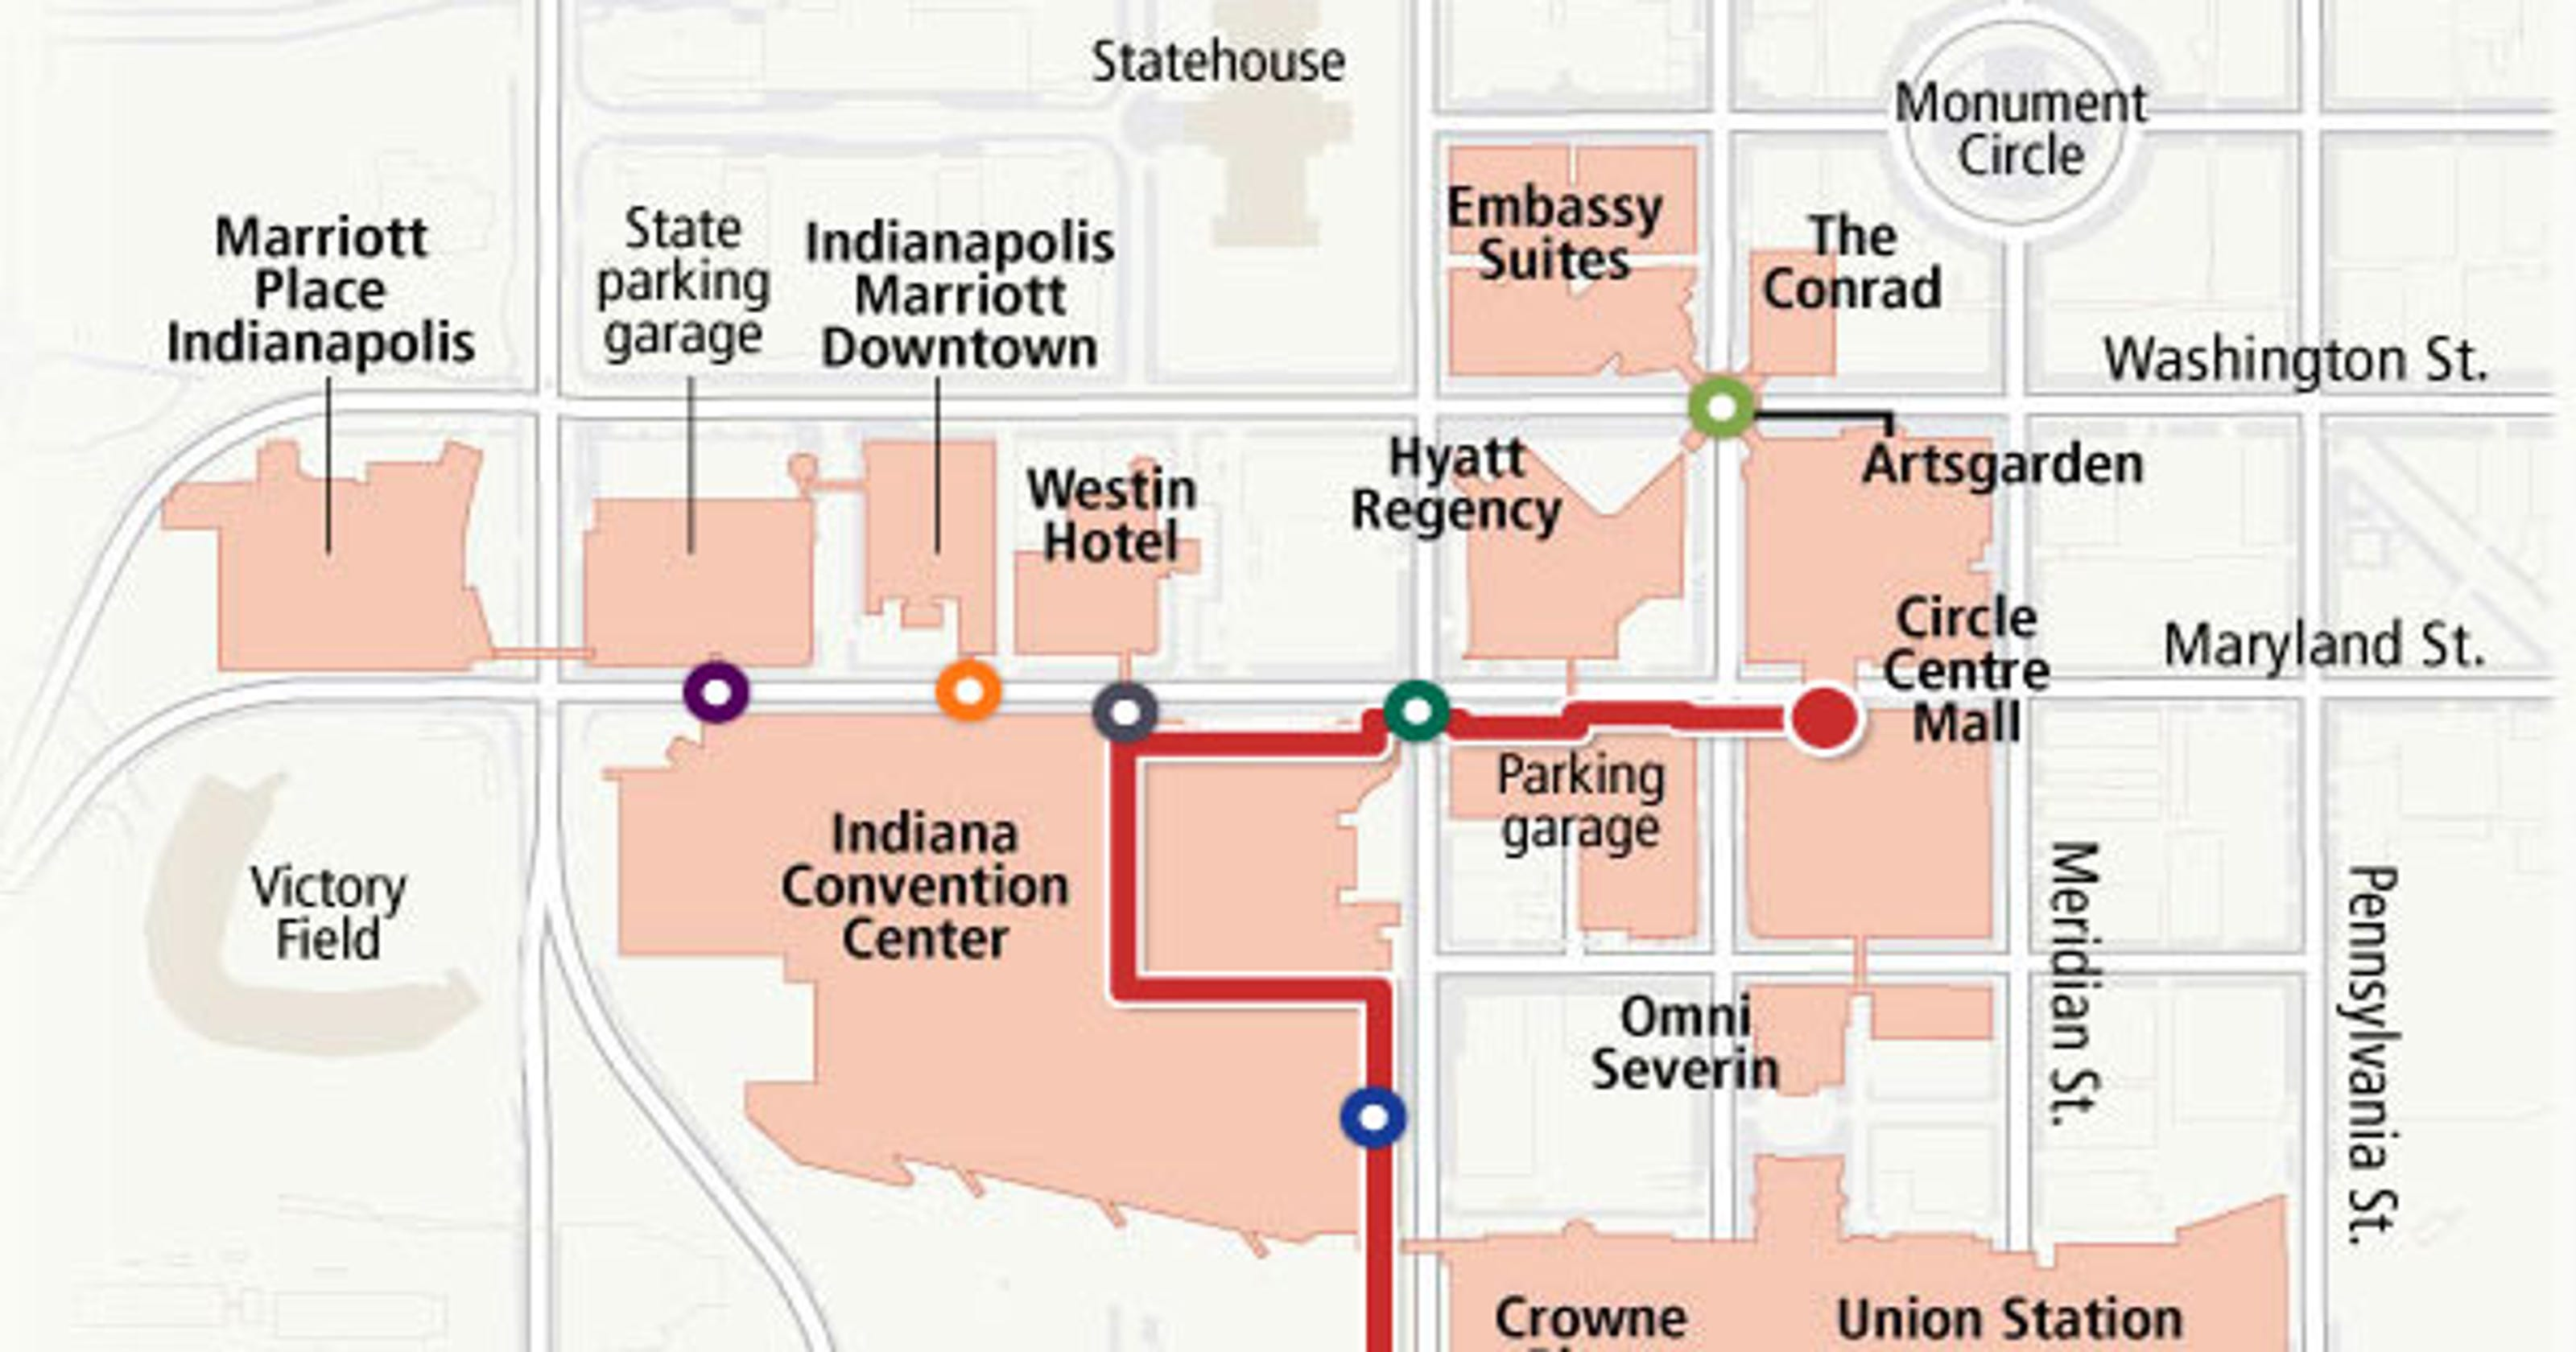 Indianapolis Convention Center Map on indianapolis bar map, circle center mall parking map, indianapolis circle city mall, indianapolis stadium map, indianapolis mall map, indianapolis area map counties, indianapolis education map, indianapolis city council map, louisville ky expo center map, indianapolis culture, indianapolis construction map, indianapolis apartments map, indianapolis fair, indianapolis school map, indianapolis hotels, indianapolis beach map, indianapolis capitol map, indianapolis marriott downtown bar, downtown indianapolis map, indianapolis tourism map,